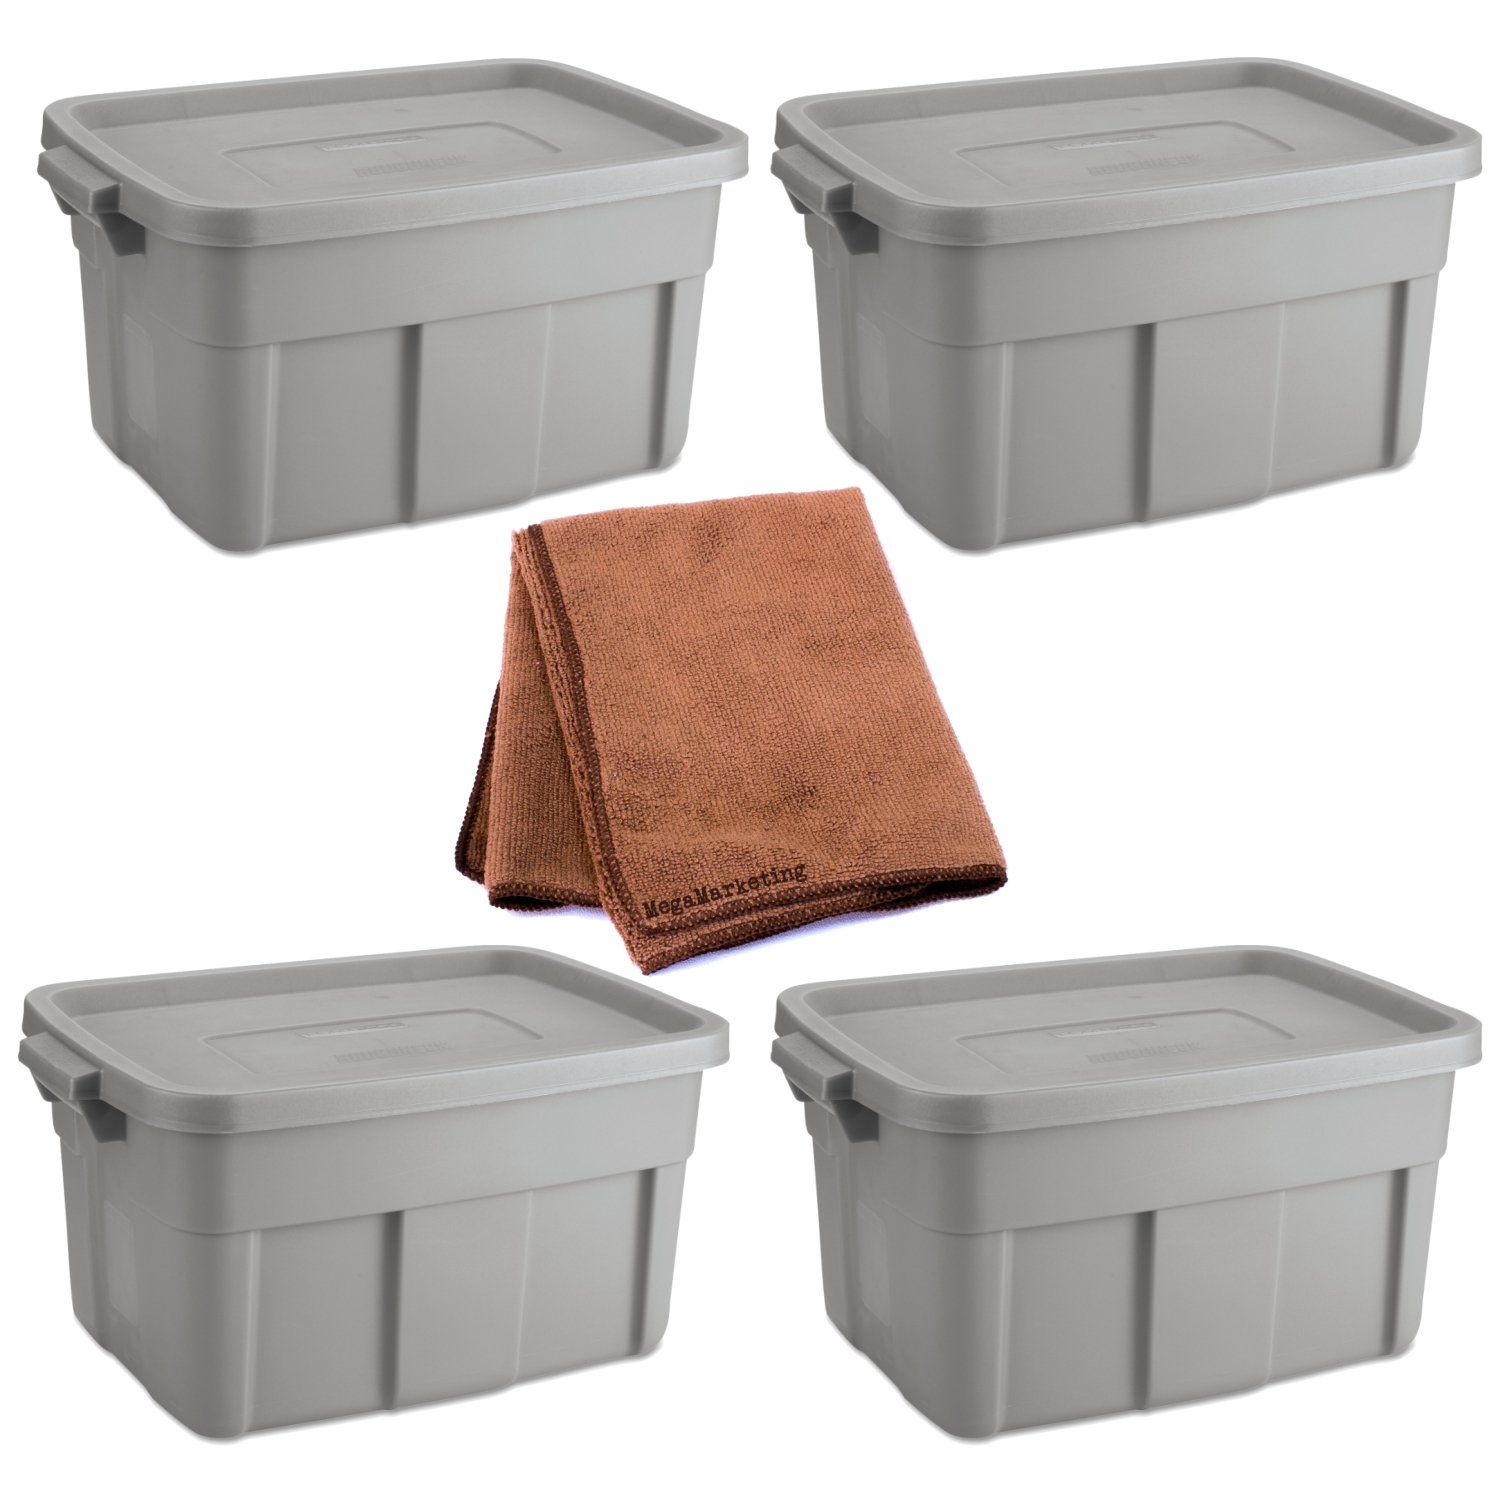 Rubbermaid 14-Gallon Roughneck Storage Box Tote Steel Gray Case of 4 with Cleaning Cloth  sc 1 st  Pinterest & Rubbermaid 14-Gallon Roughneck Storage Box Tote Steel Gray Case o ...